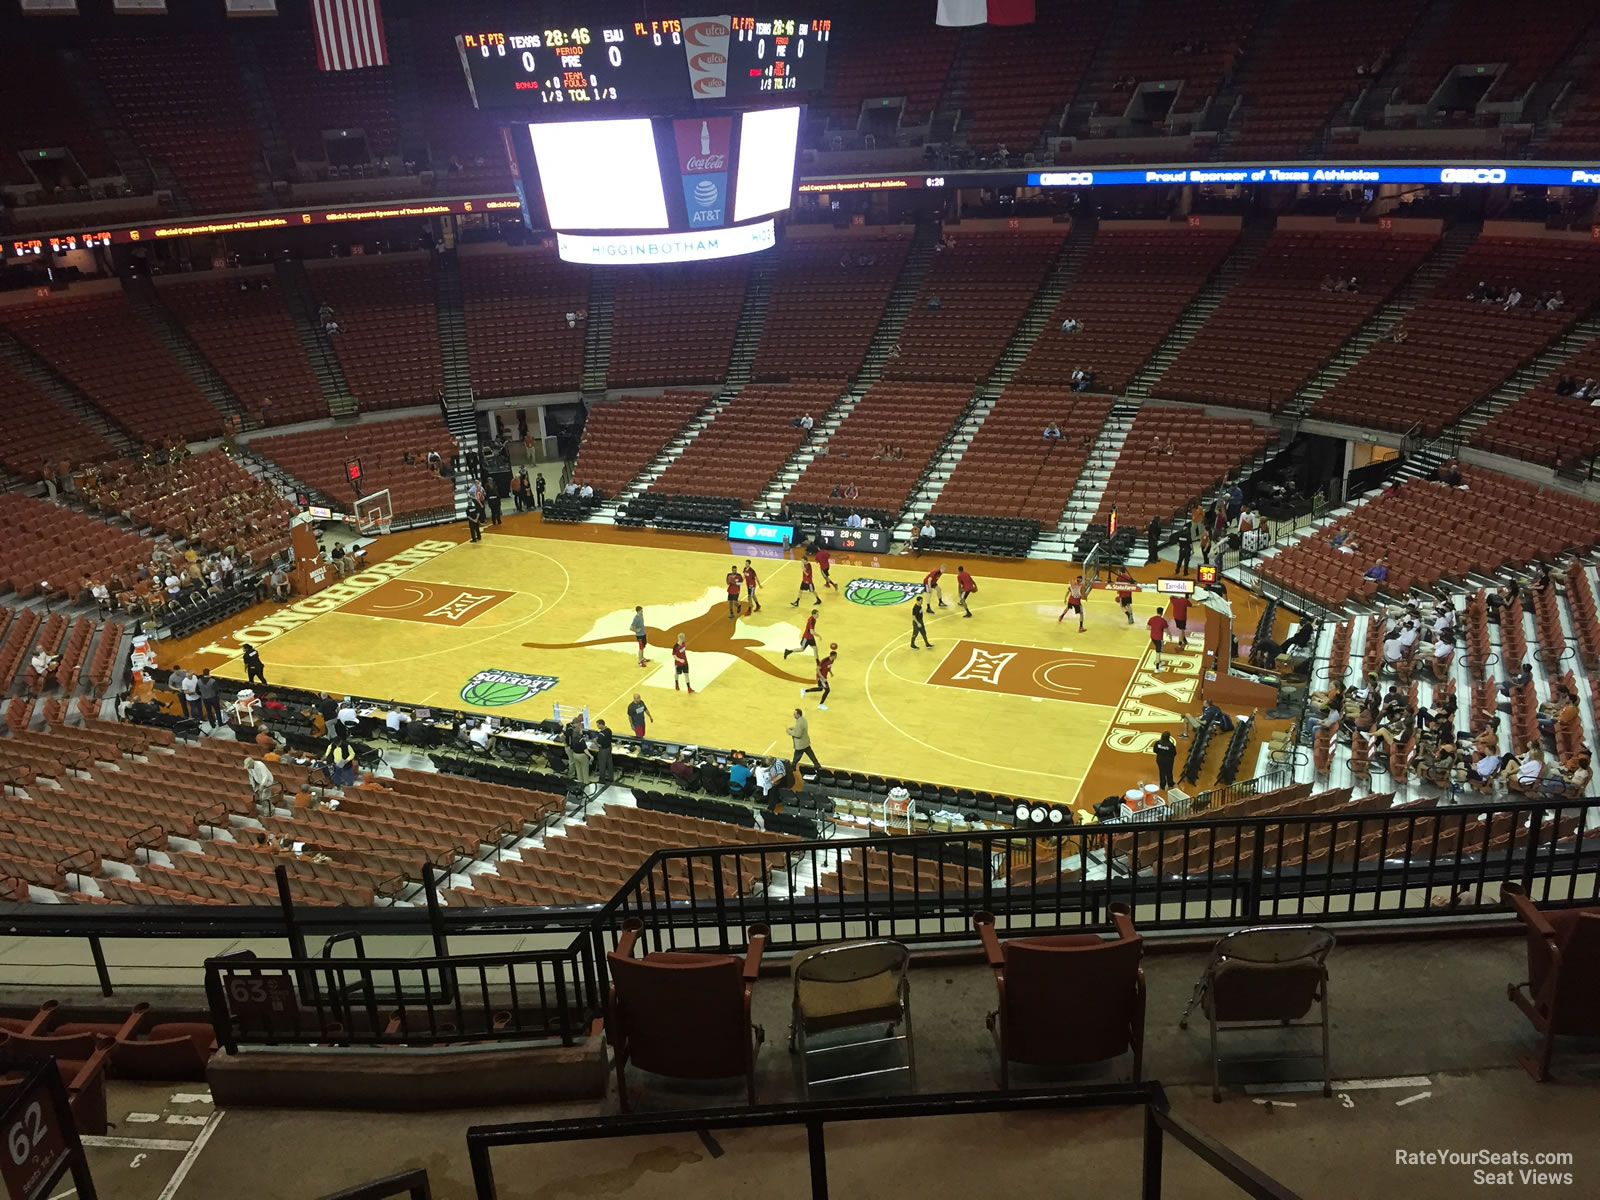 Seat View for Frank Erwin Center Section 63, Row 8